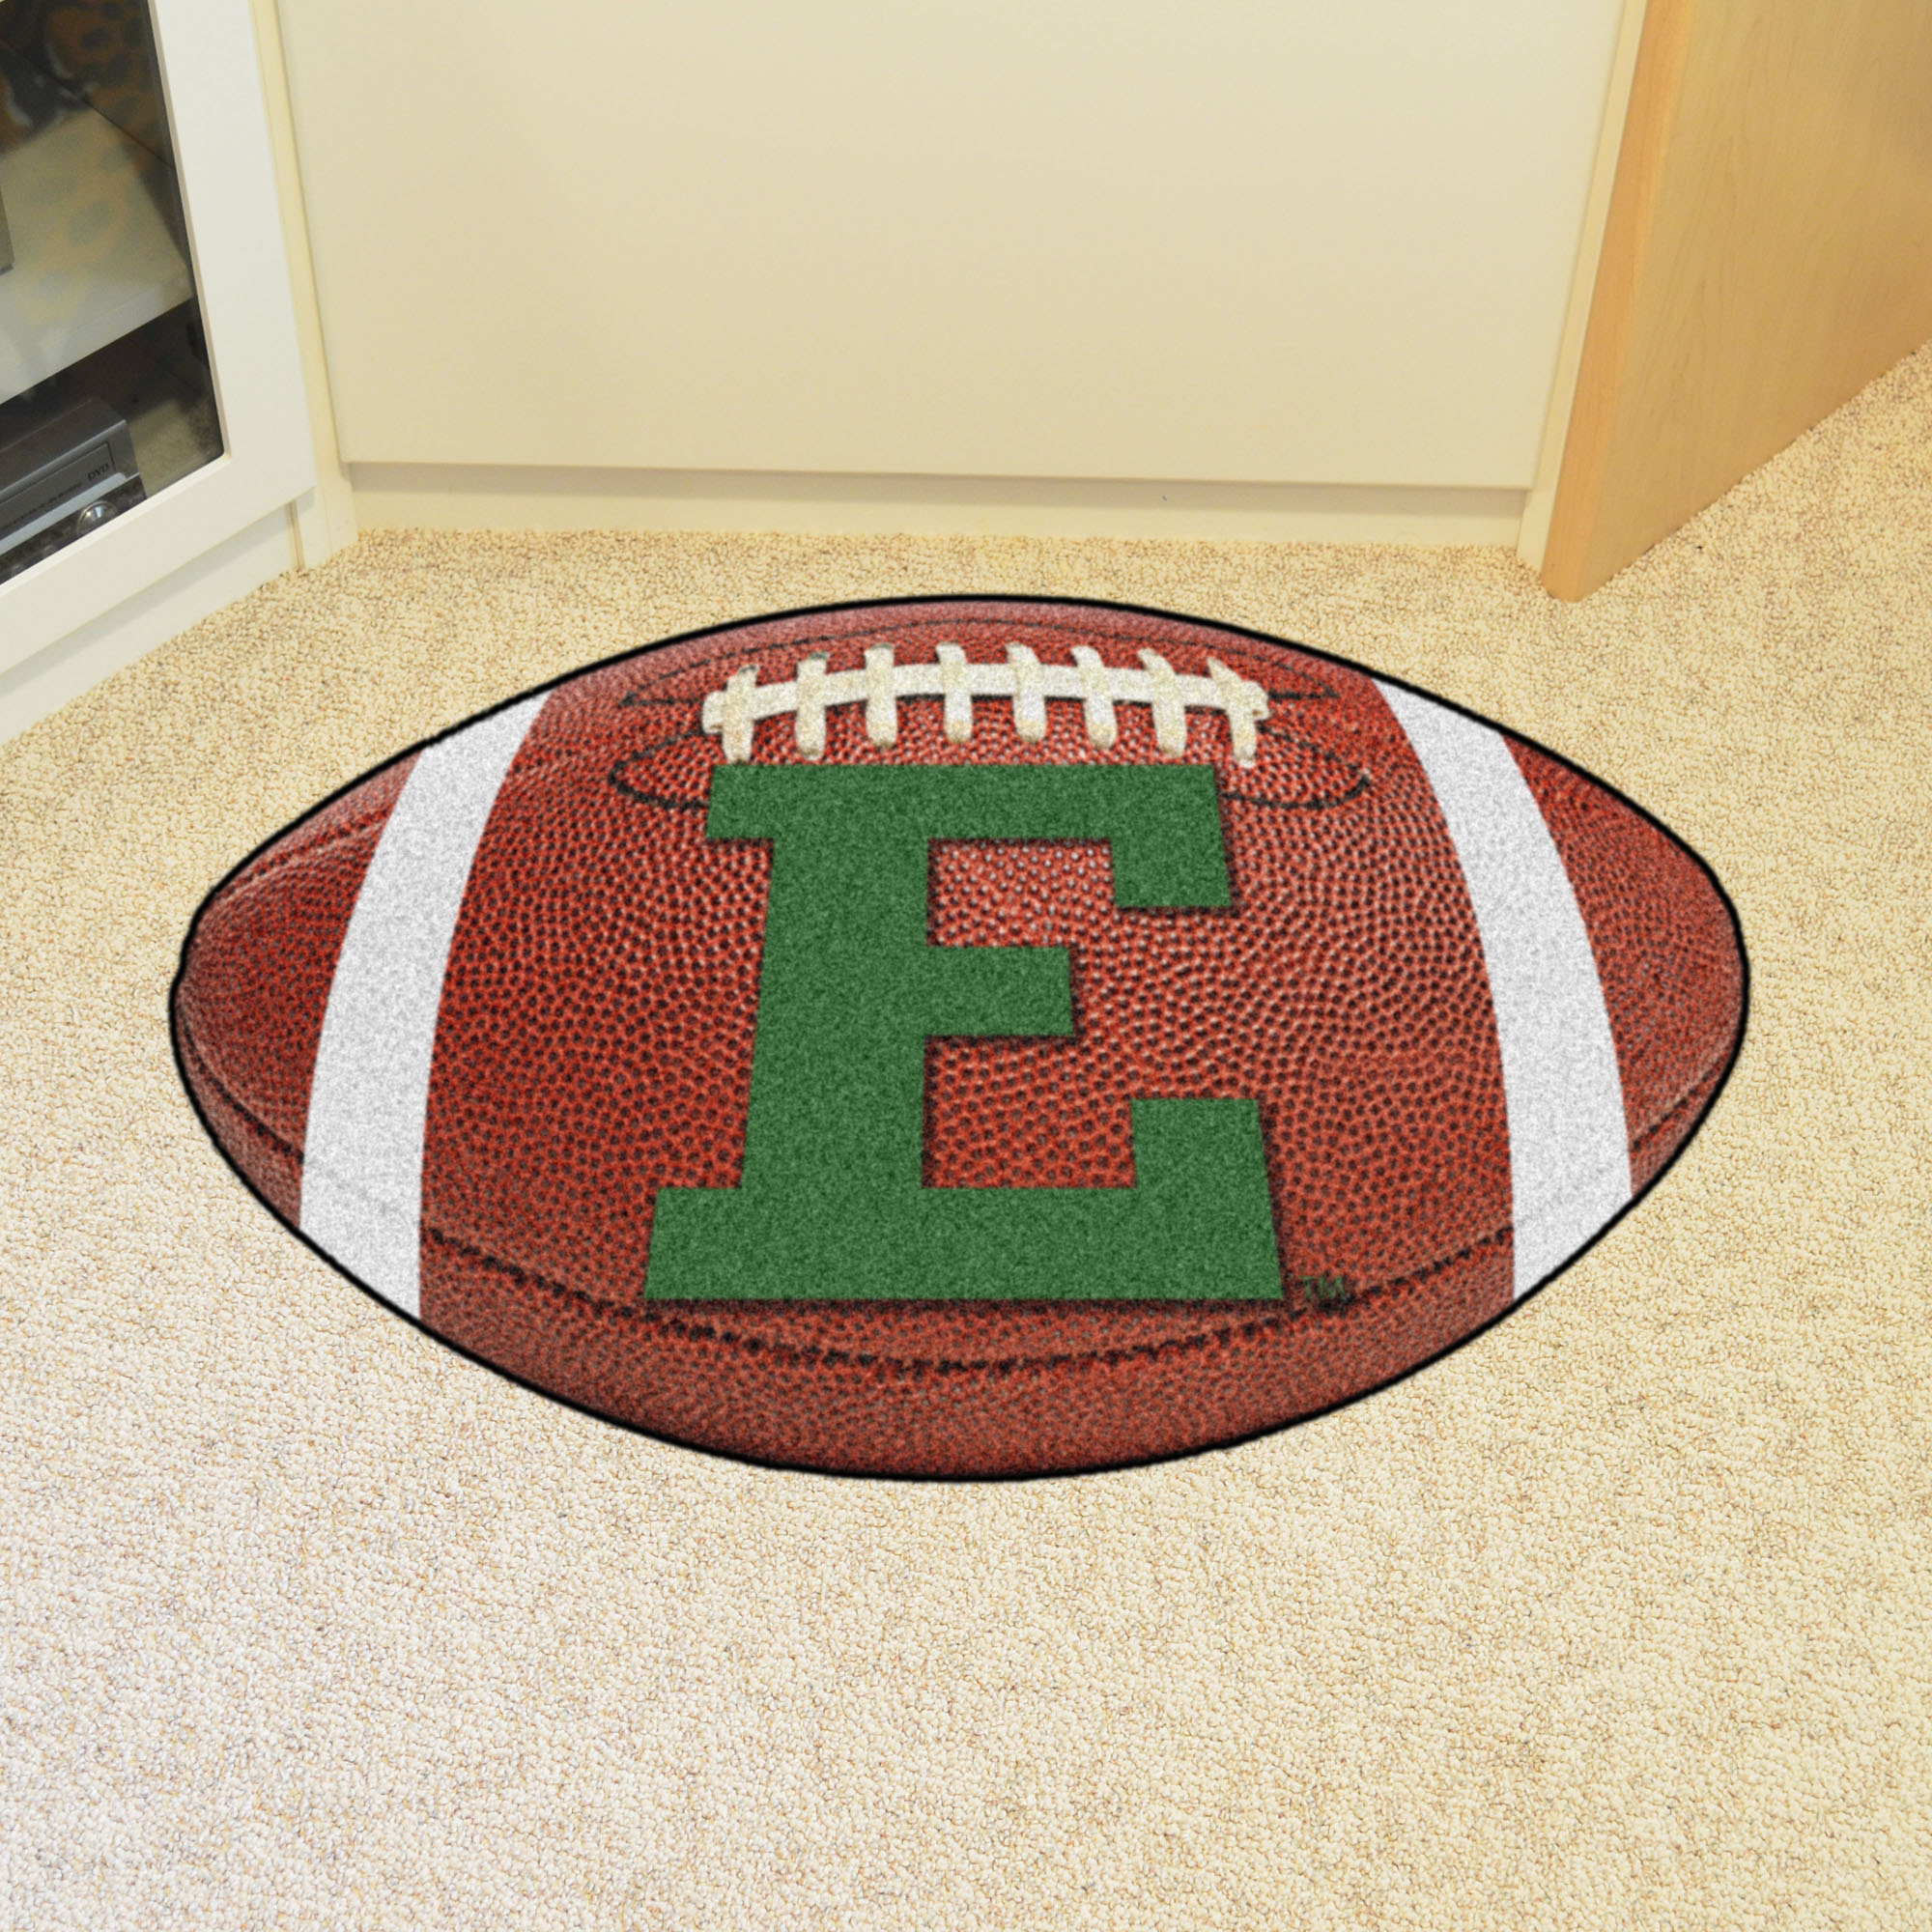 Eastern Michigan University Ball Shaped Area Rugs (Ball Shaped Area Rugs: Football)